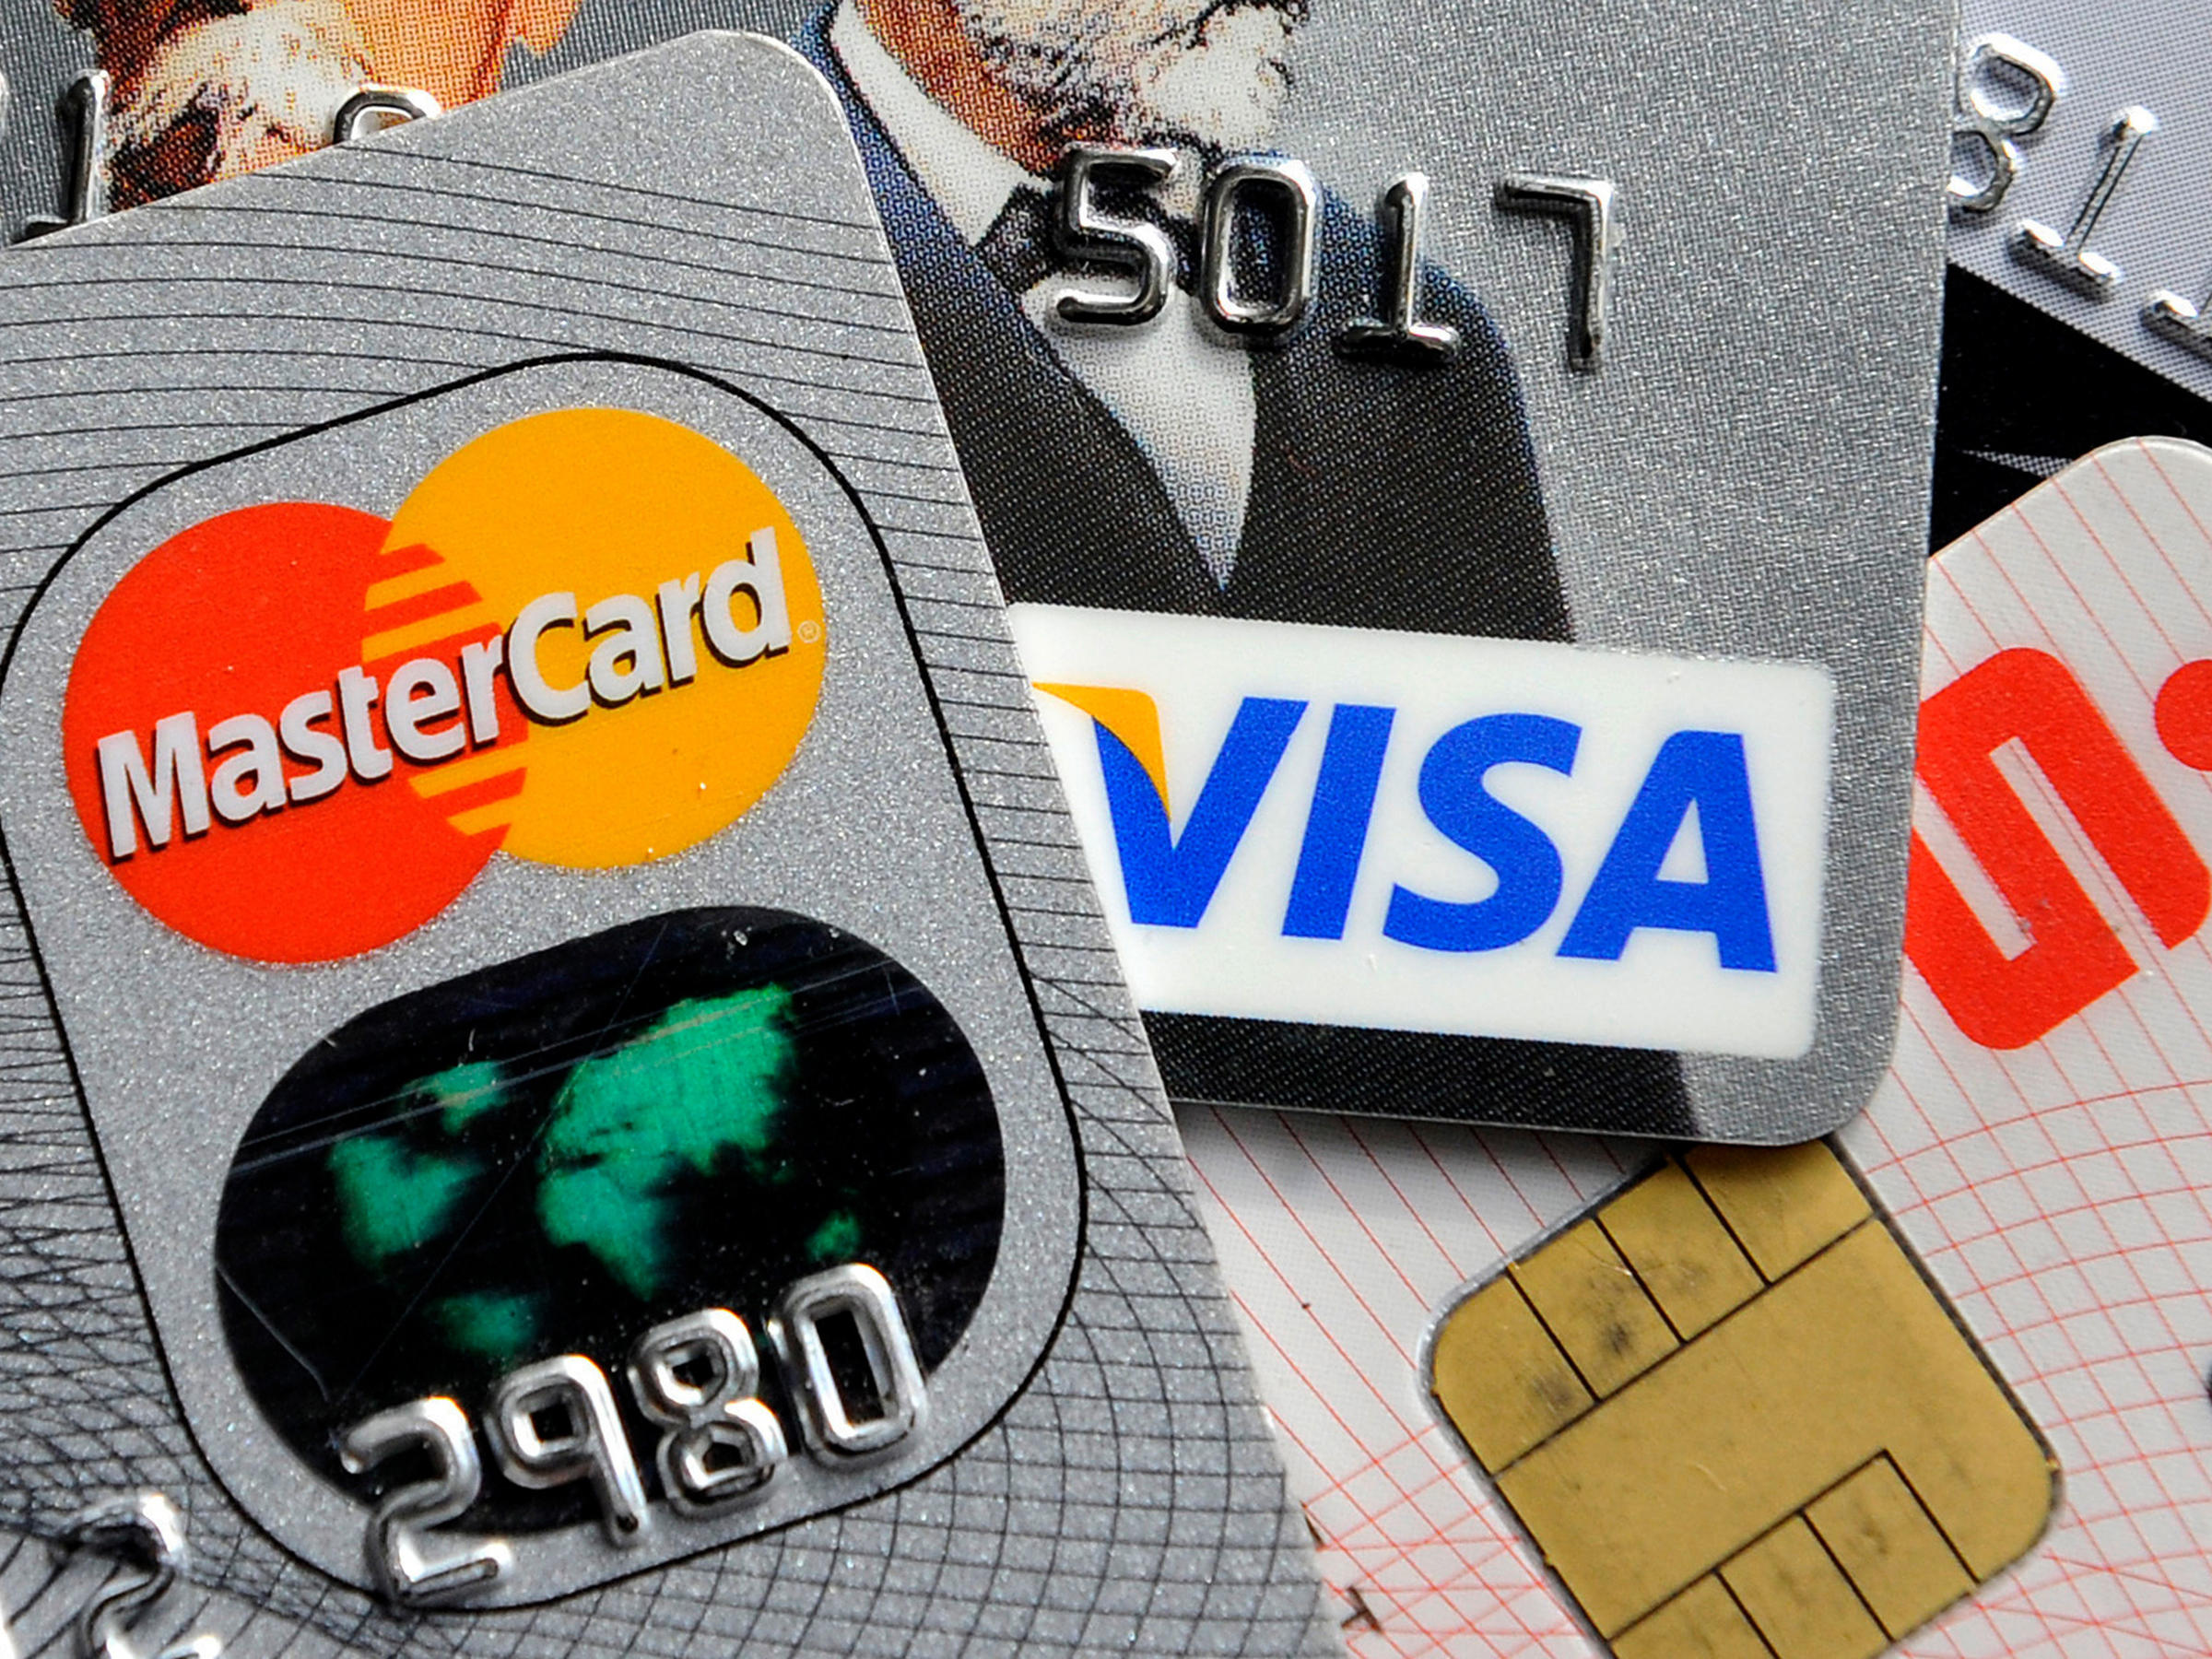 MI ranks #6 for vulnerability to identity theft, fraud